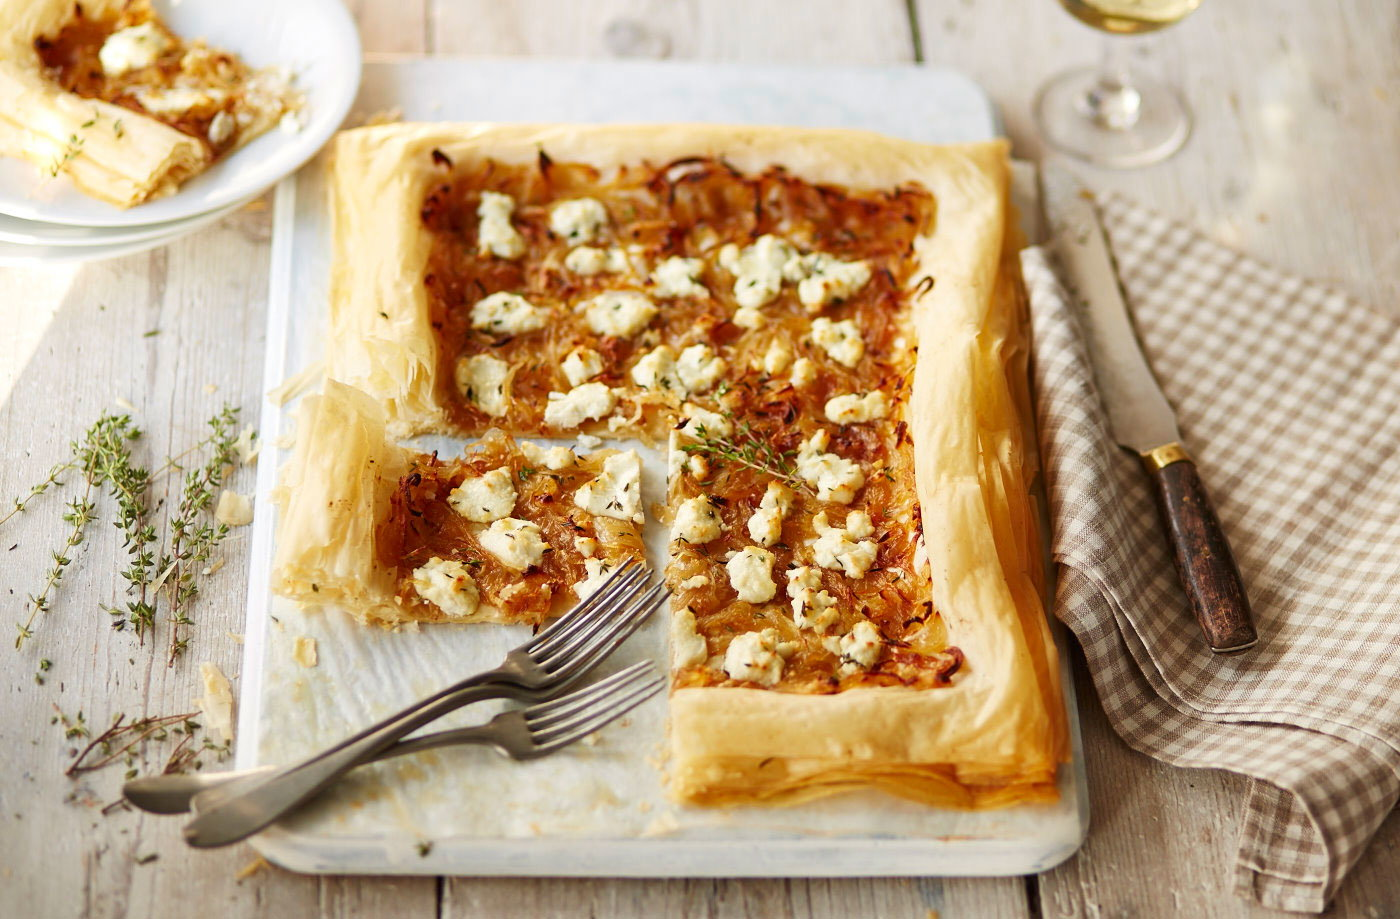 Caramelised onion and goat's cheese filo tart recipe